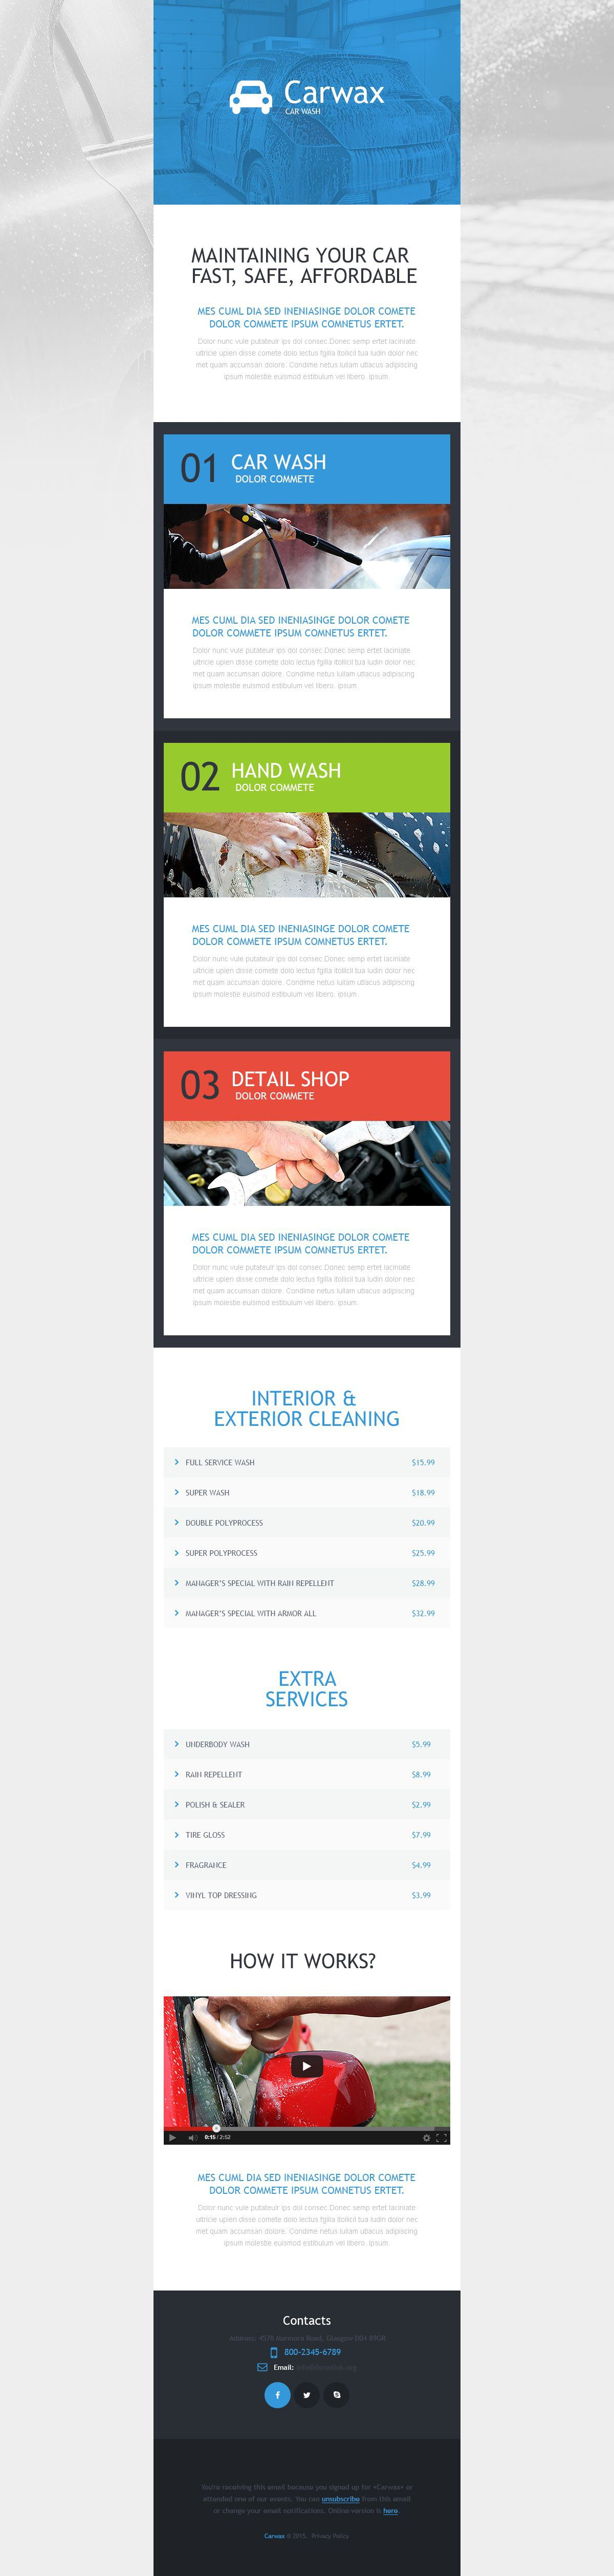 The Carwax Car Wash Center Newsletter Template Design 54023, one of the best Newsletter templates of its kind (cars, most popular), also known as Carwax car wash center Newsletter template, washing Newsletter template, staff Newsletter template, cleaning Newsletter template, oil Newsletter template, lube salon Newsletter template, wheel Newsletter template, covers Newsletter template, rinsing Newsletter template, water Newsletter template, drying Newsletter template, soap Newsletter template, polish Newsletter template, chassis Newsletter template, dirty Newsletter template, dashboard Newsletter template, hoovering Newsletter template, seats Newsletter template, cleaning Newsletter template, brushes Newsletter template, service Newsletter template, coupons Newsletter template, fund-raising and related with Carwax car wash center, washing, staff, cleaning, oil, lube salon, wheel, covers, rinsing, water, drying, soap, polish, chassis, dirty, dashboard, hoovering, seats, cleaning, brushes, service, coupons, fund-raising, etc.